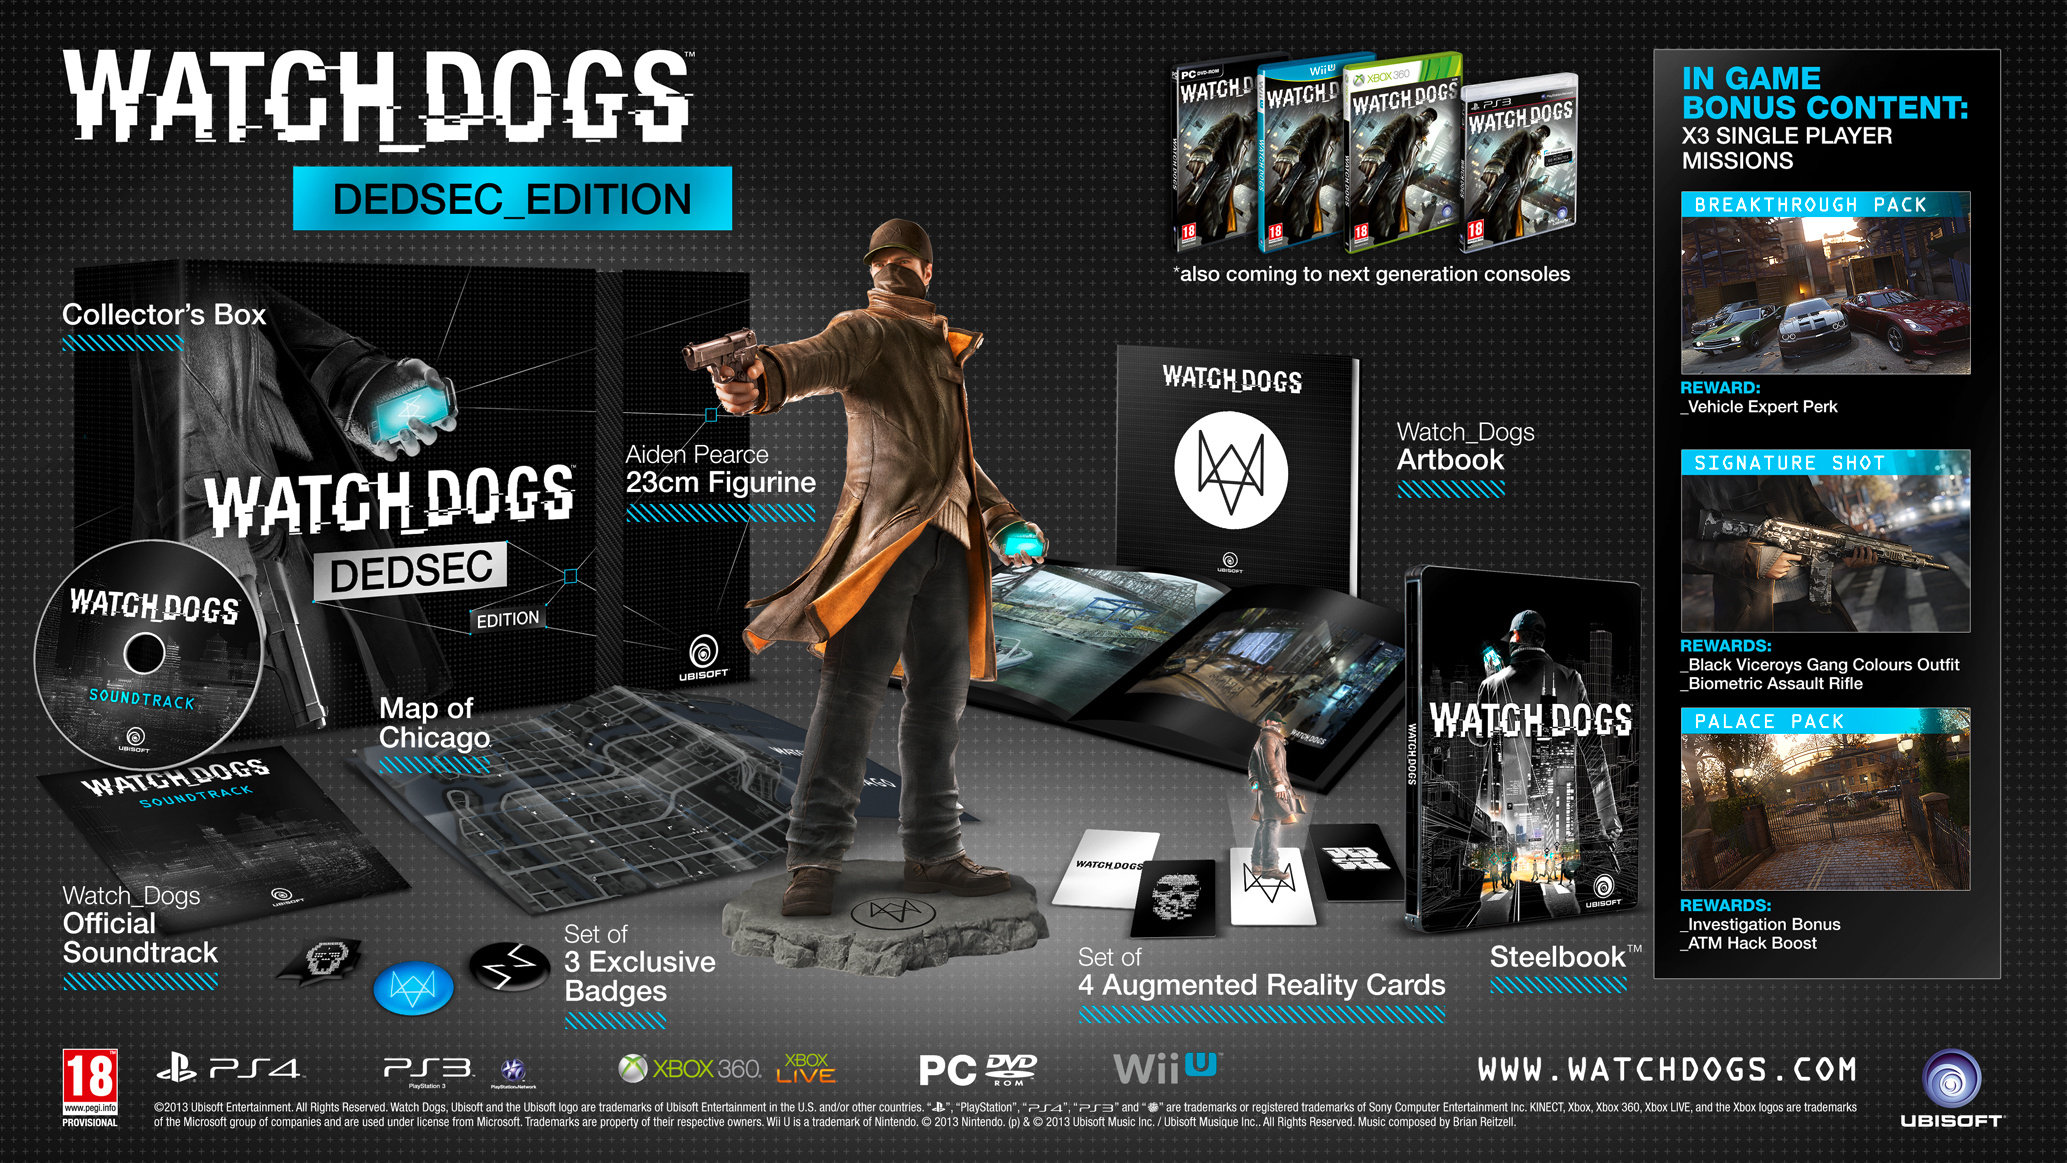 watch-dogs-dedsec-edition